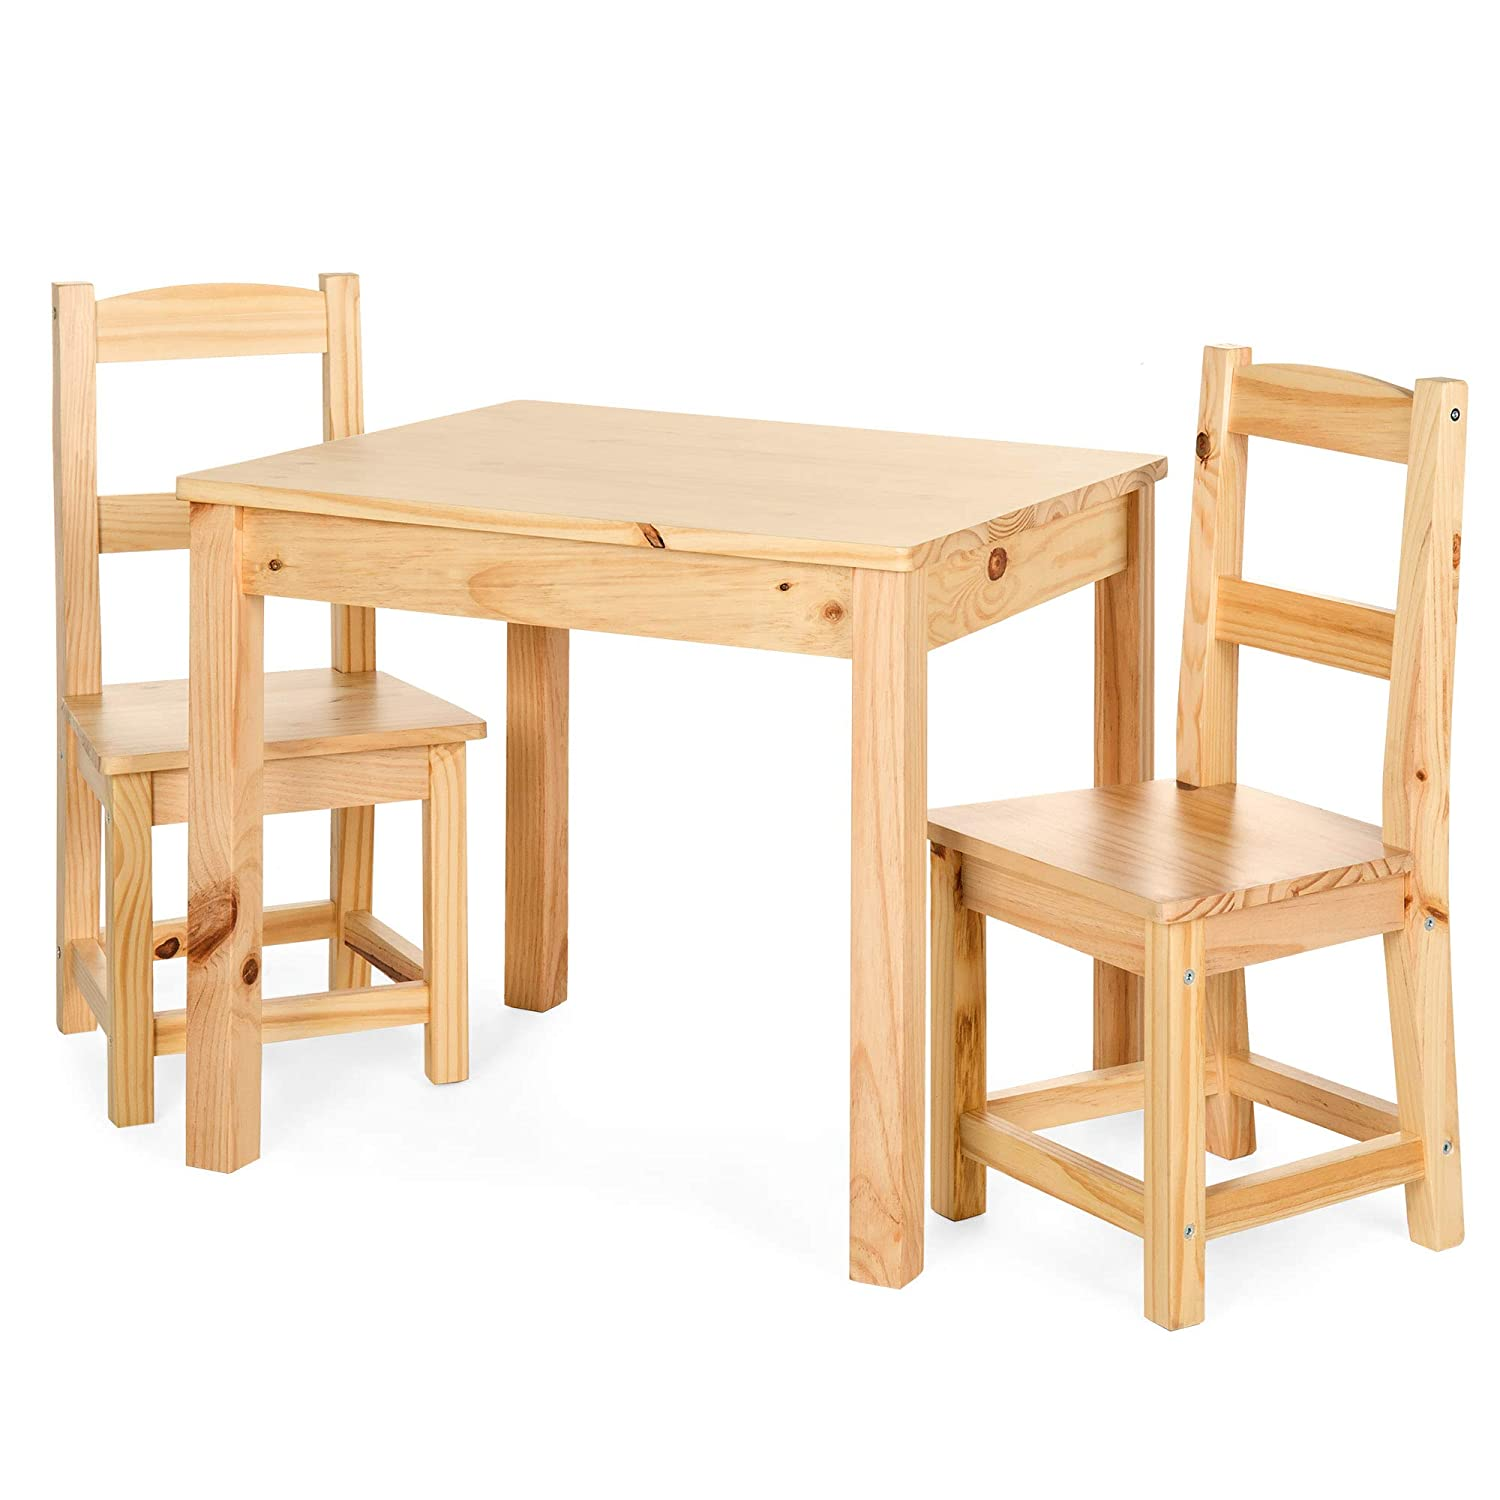 Best choice products 3 piece kids toddlers multipurpose wooden activity table furniture set for nursery bedroom play room living room classroom w 2